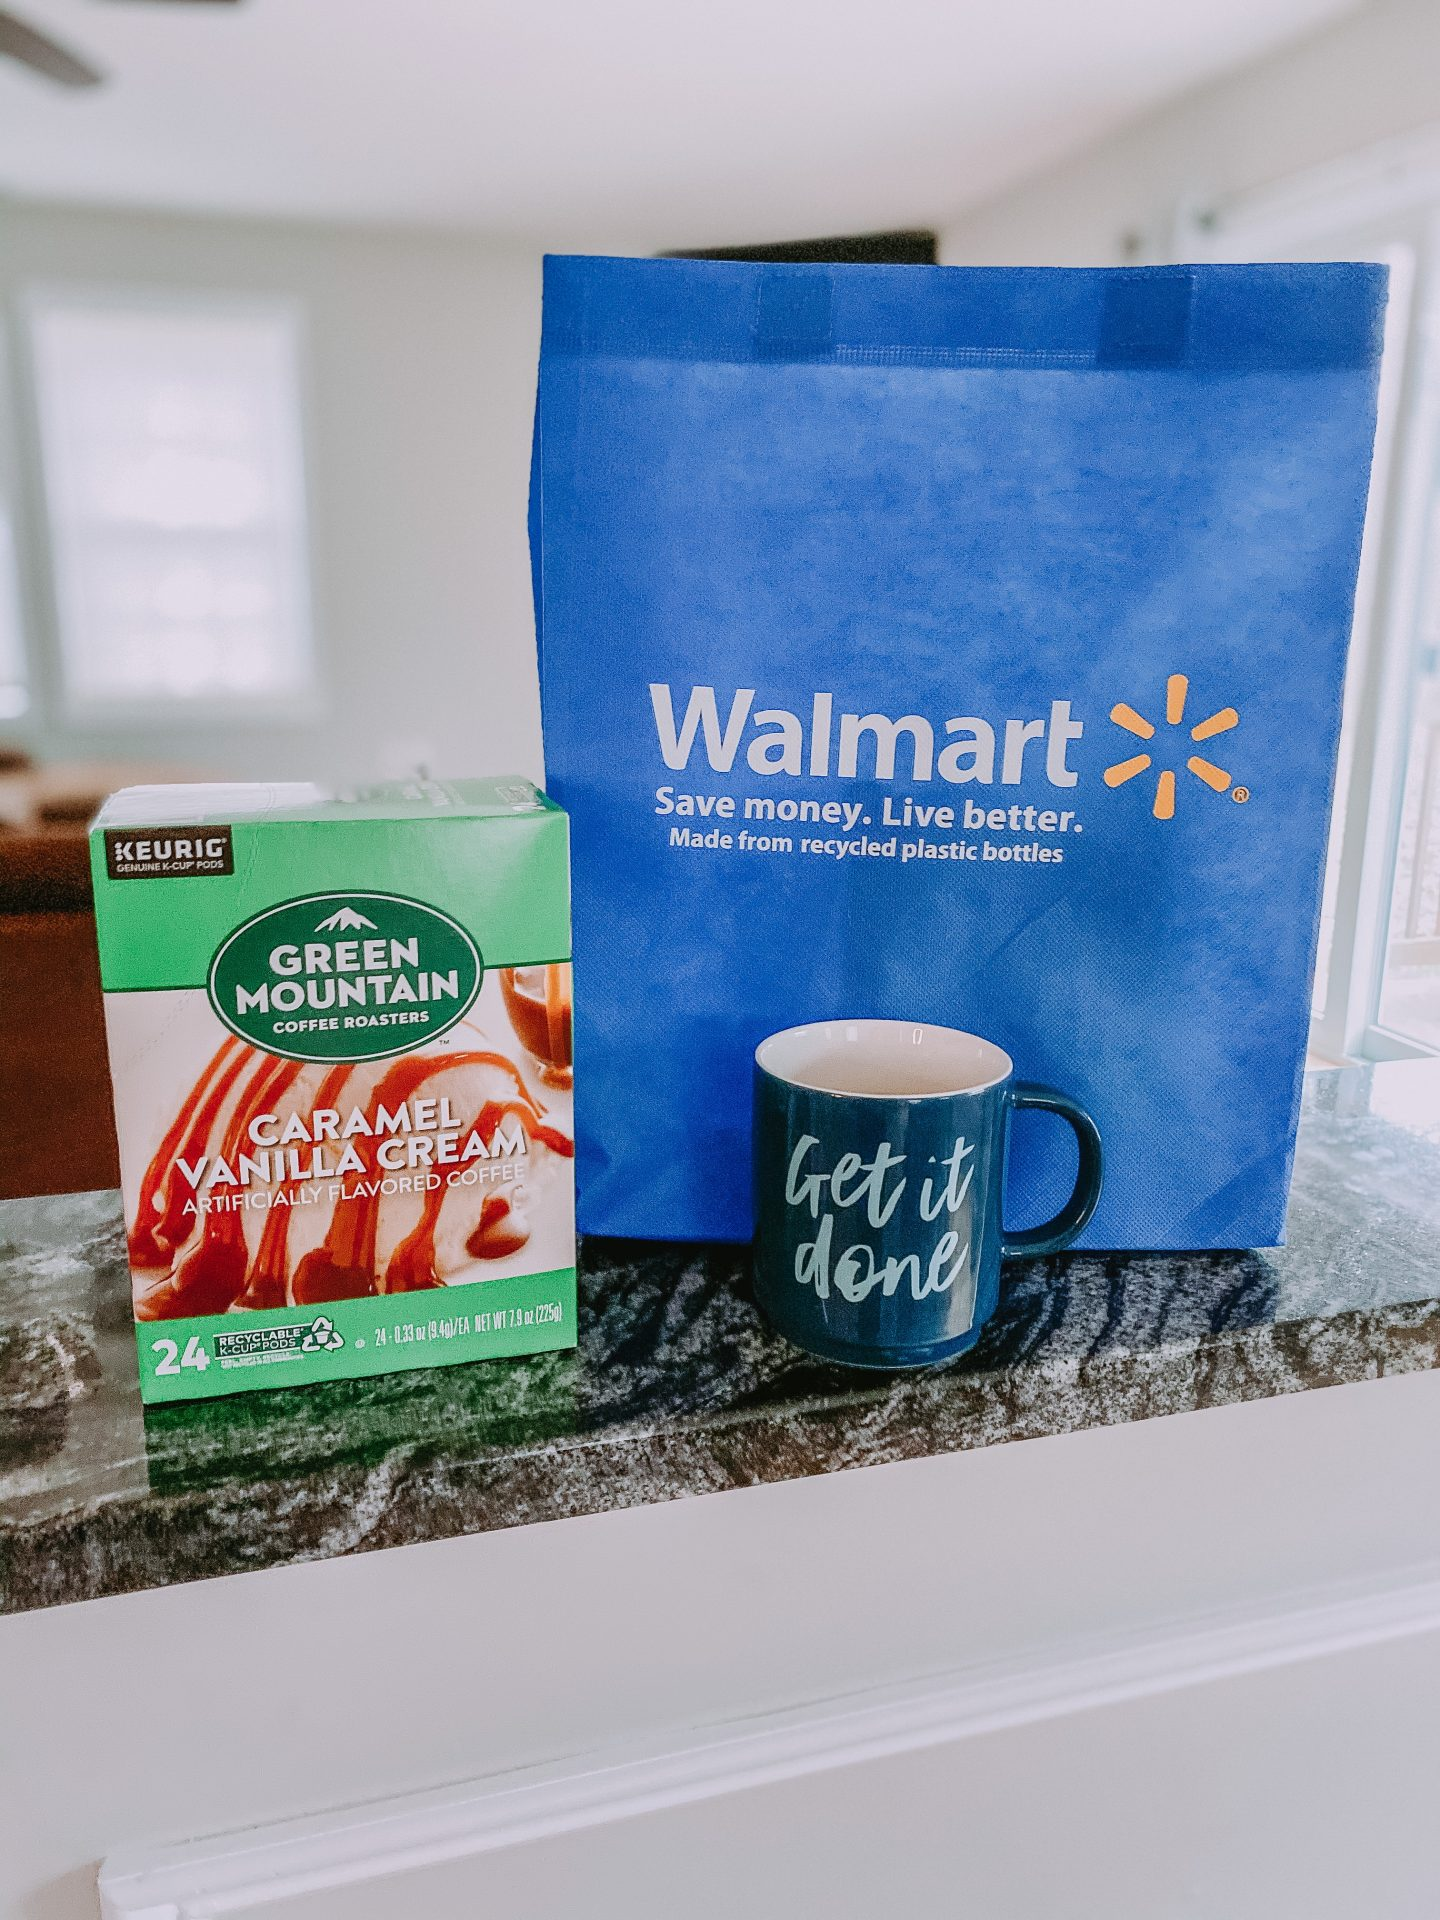 How to help the environment by shopping at Walmart